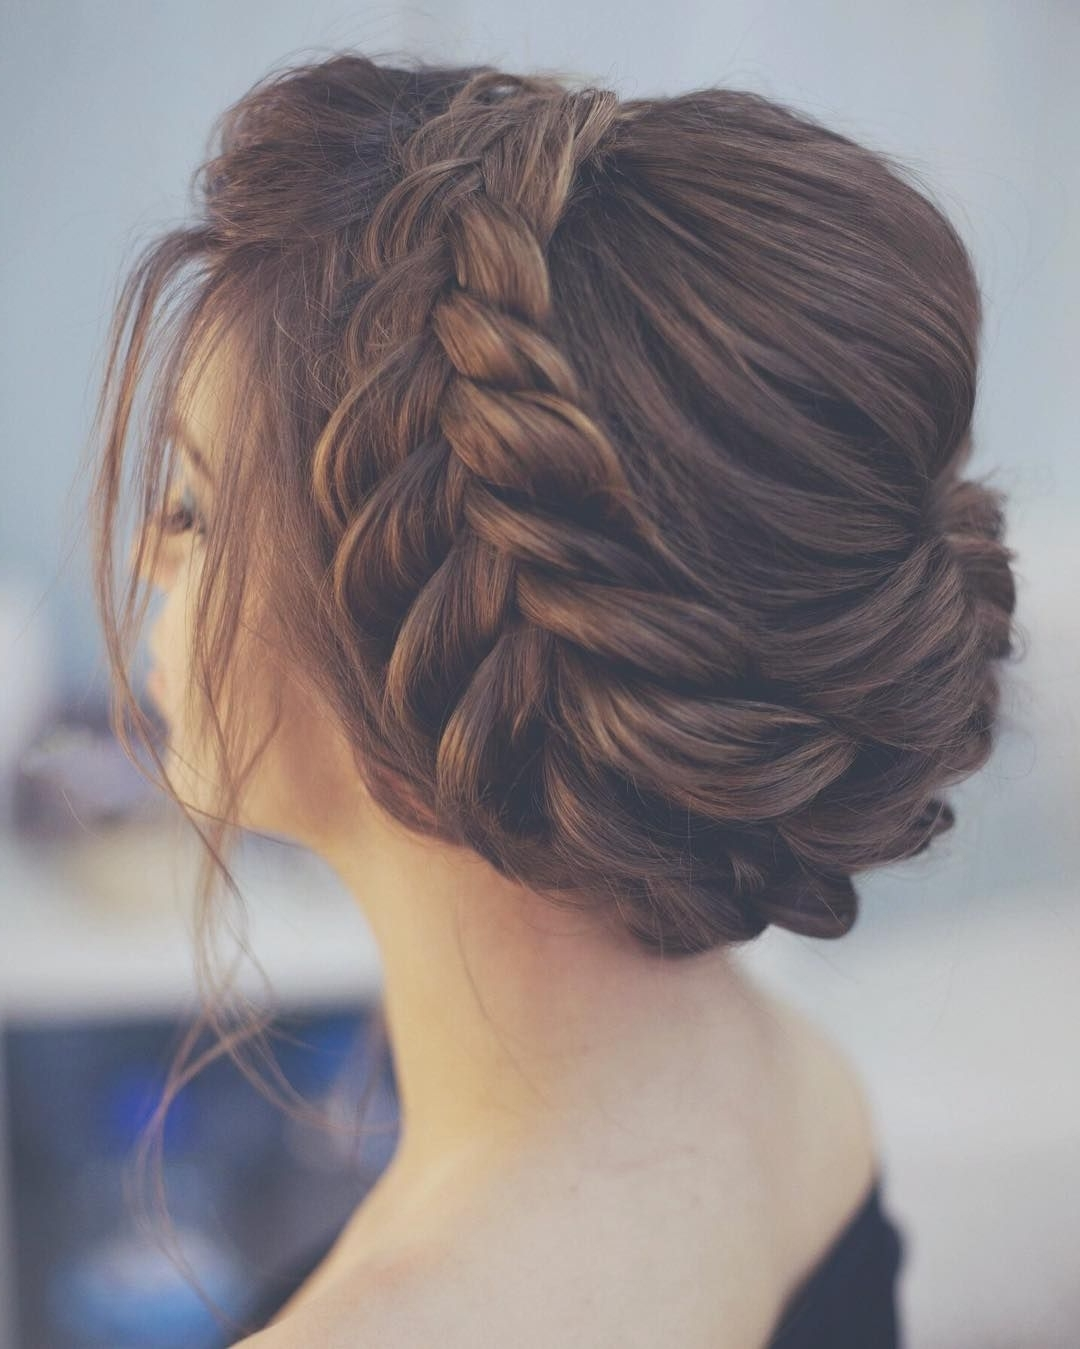 Crown Braids, Braid With Regard To Latest Prom Braided Hairstyles (View 12 of 15)